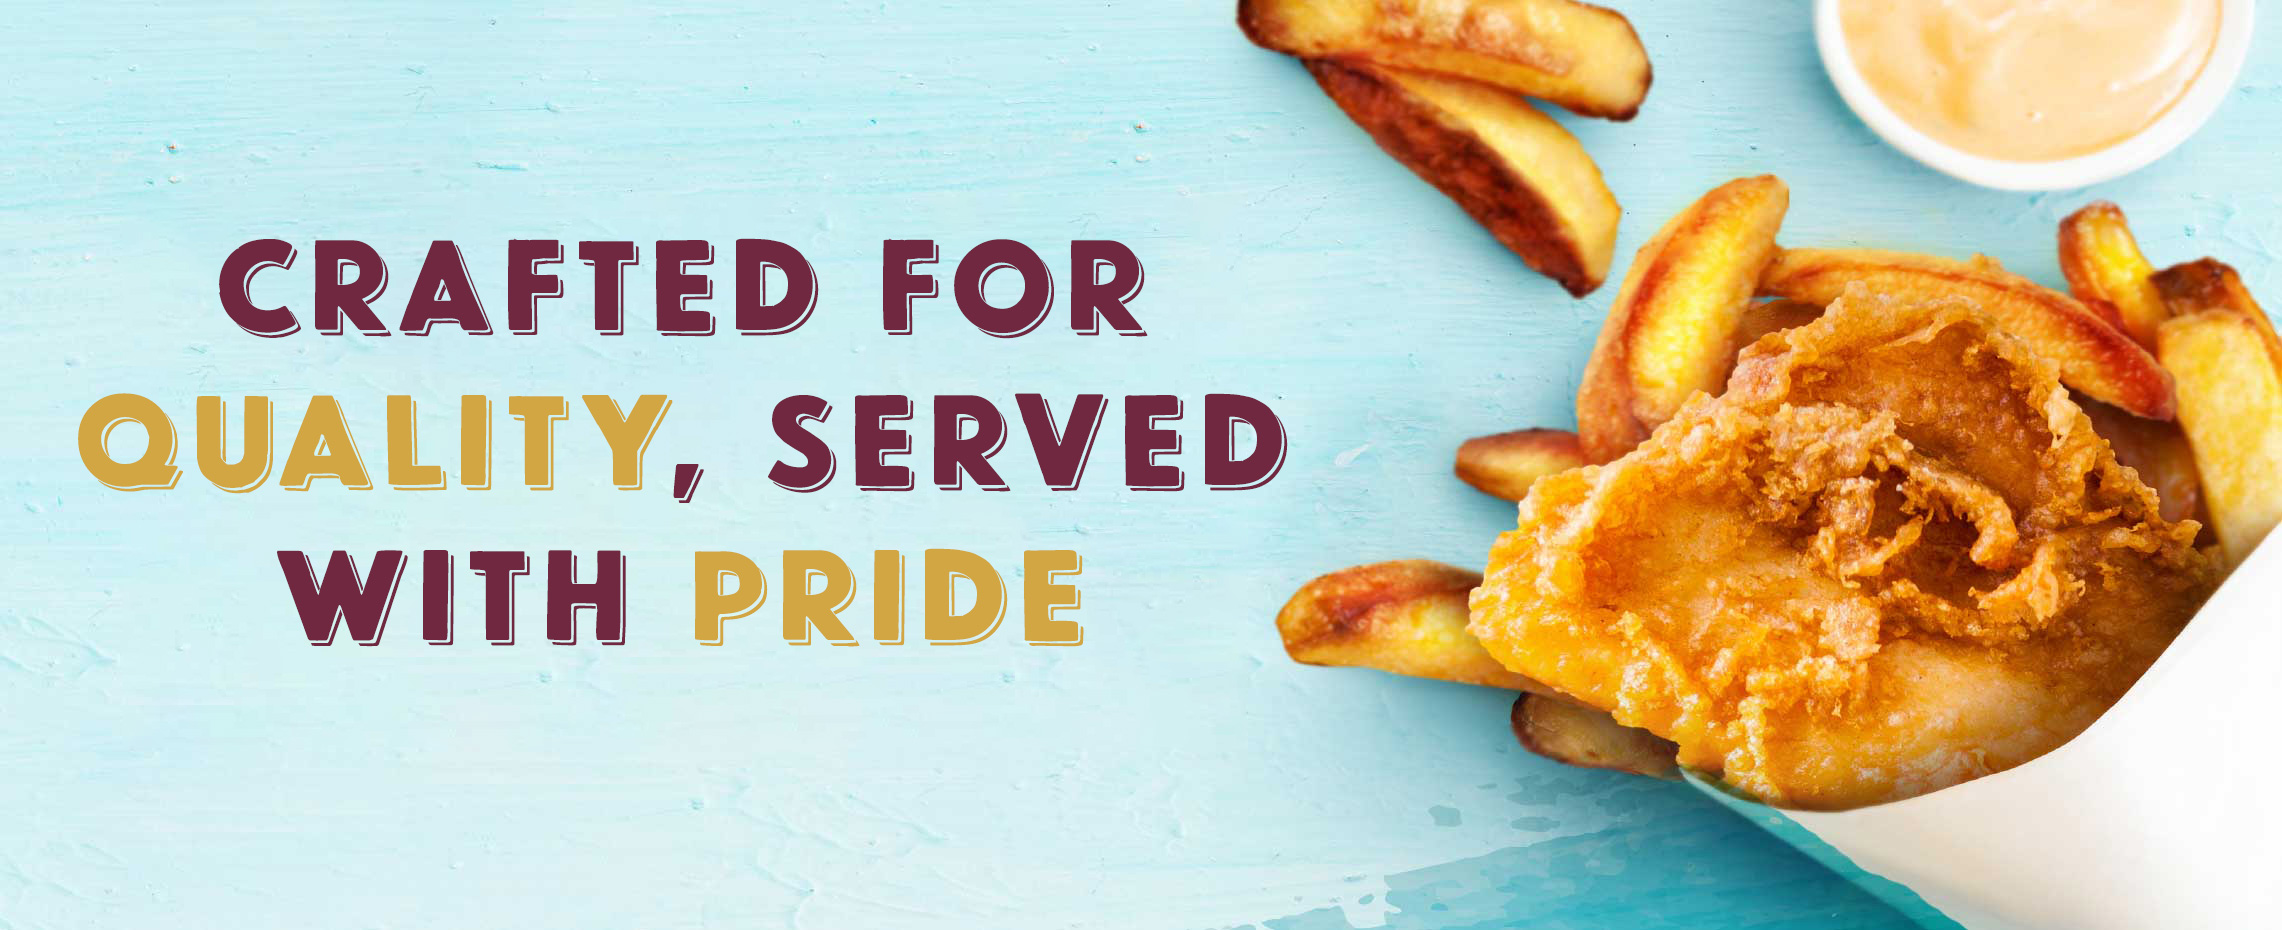 Switch to Sarson's - Proud to Serve Quality Fish and Chips Shops of Great Britain - The Choice of 9 out of 10 Fish and Chips Shops